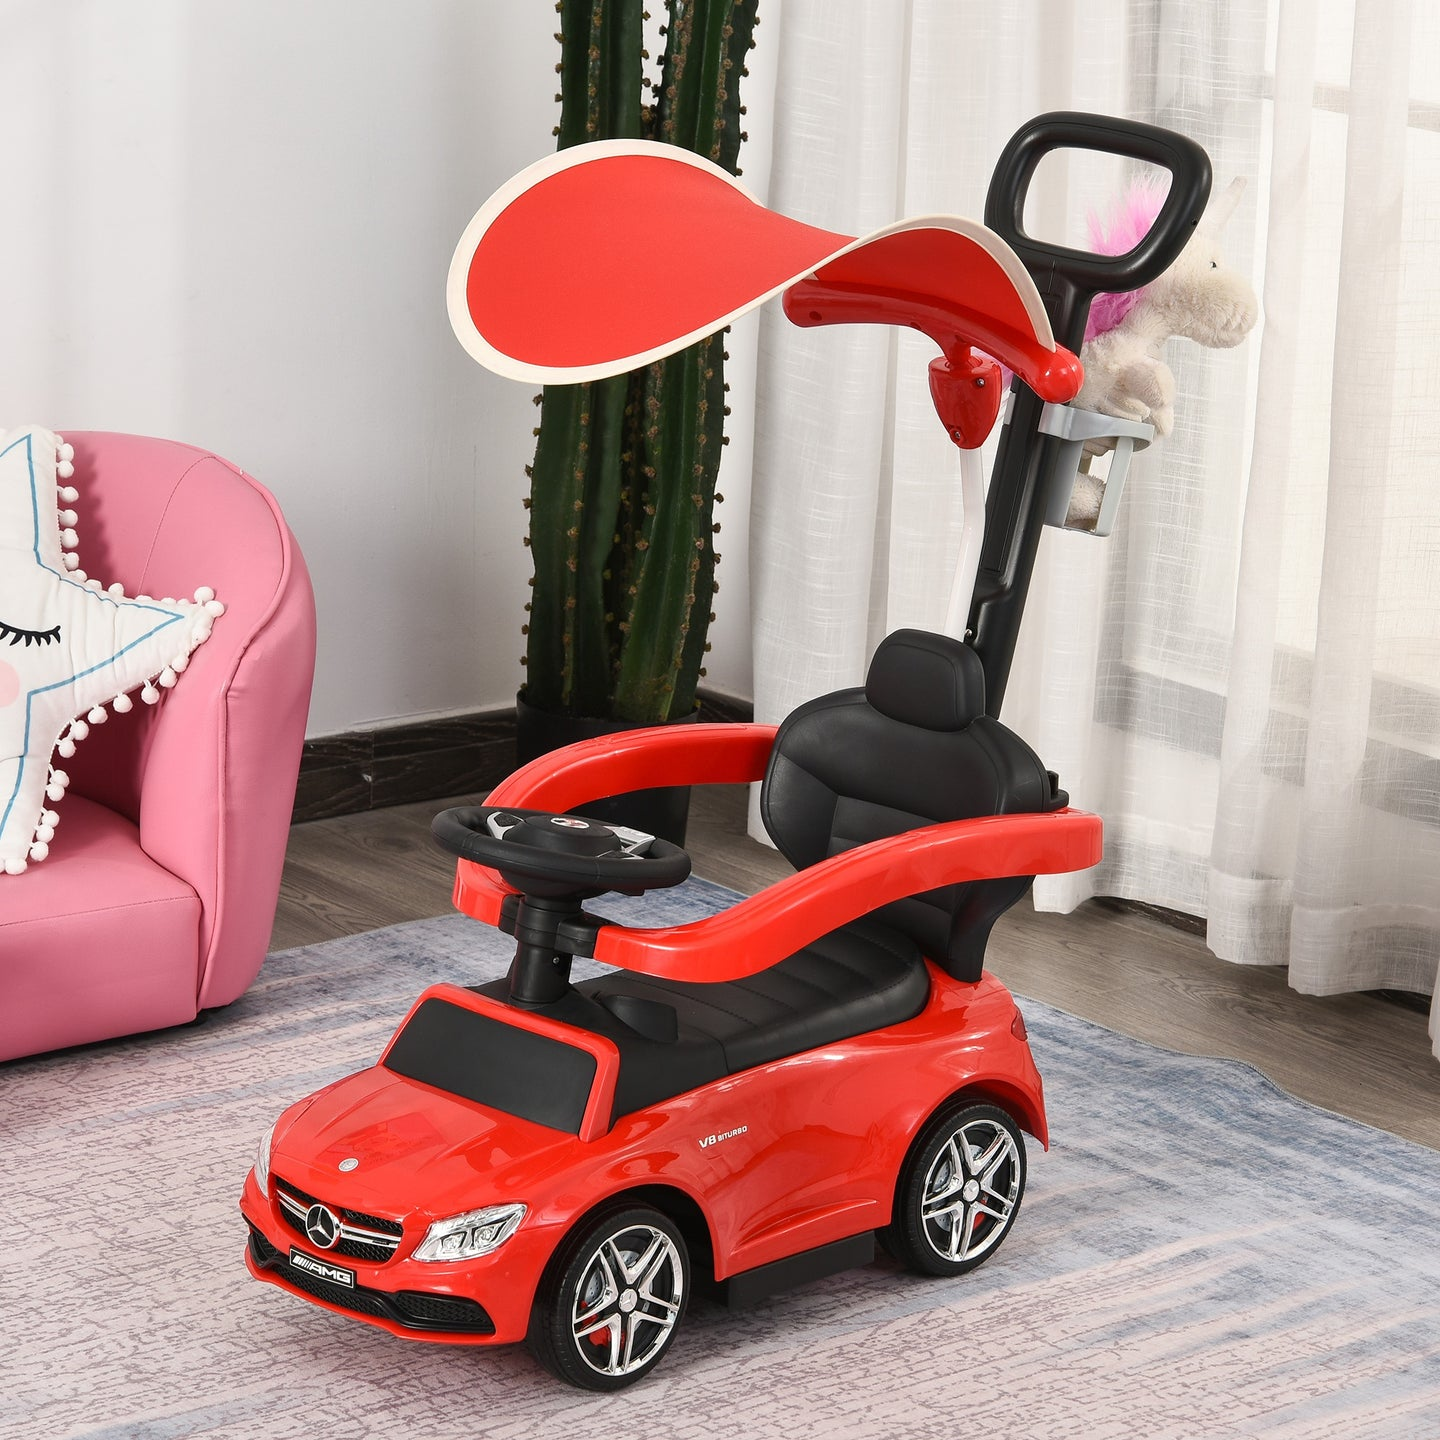 HOMCOM 3 in 1 Ride on Push Car Mercedes Benz for Toddlers Stroller Sliding Walking Car with Sun Canopy Horn Sound Safety Bar Cup Holder Ride on Toy